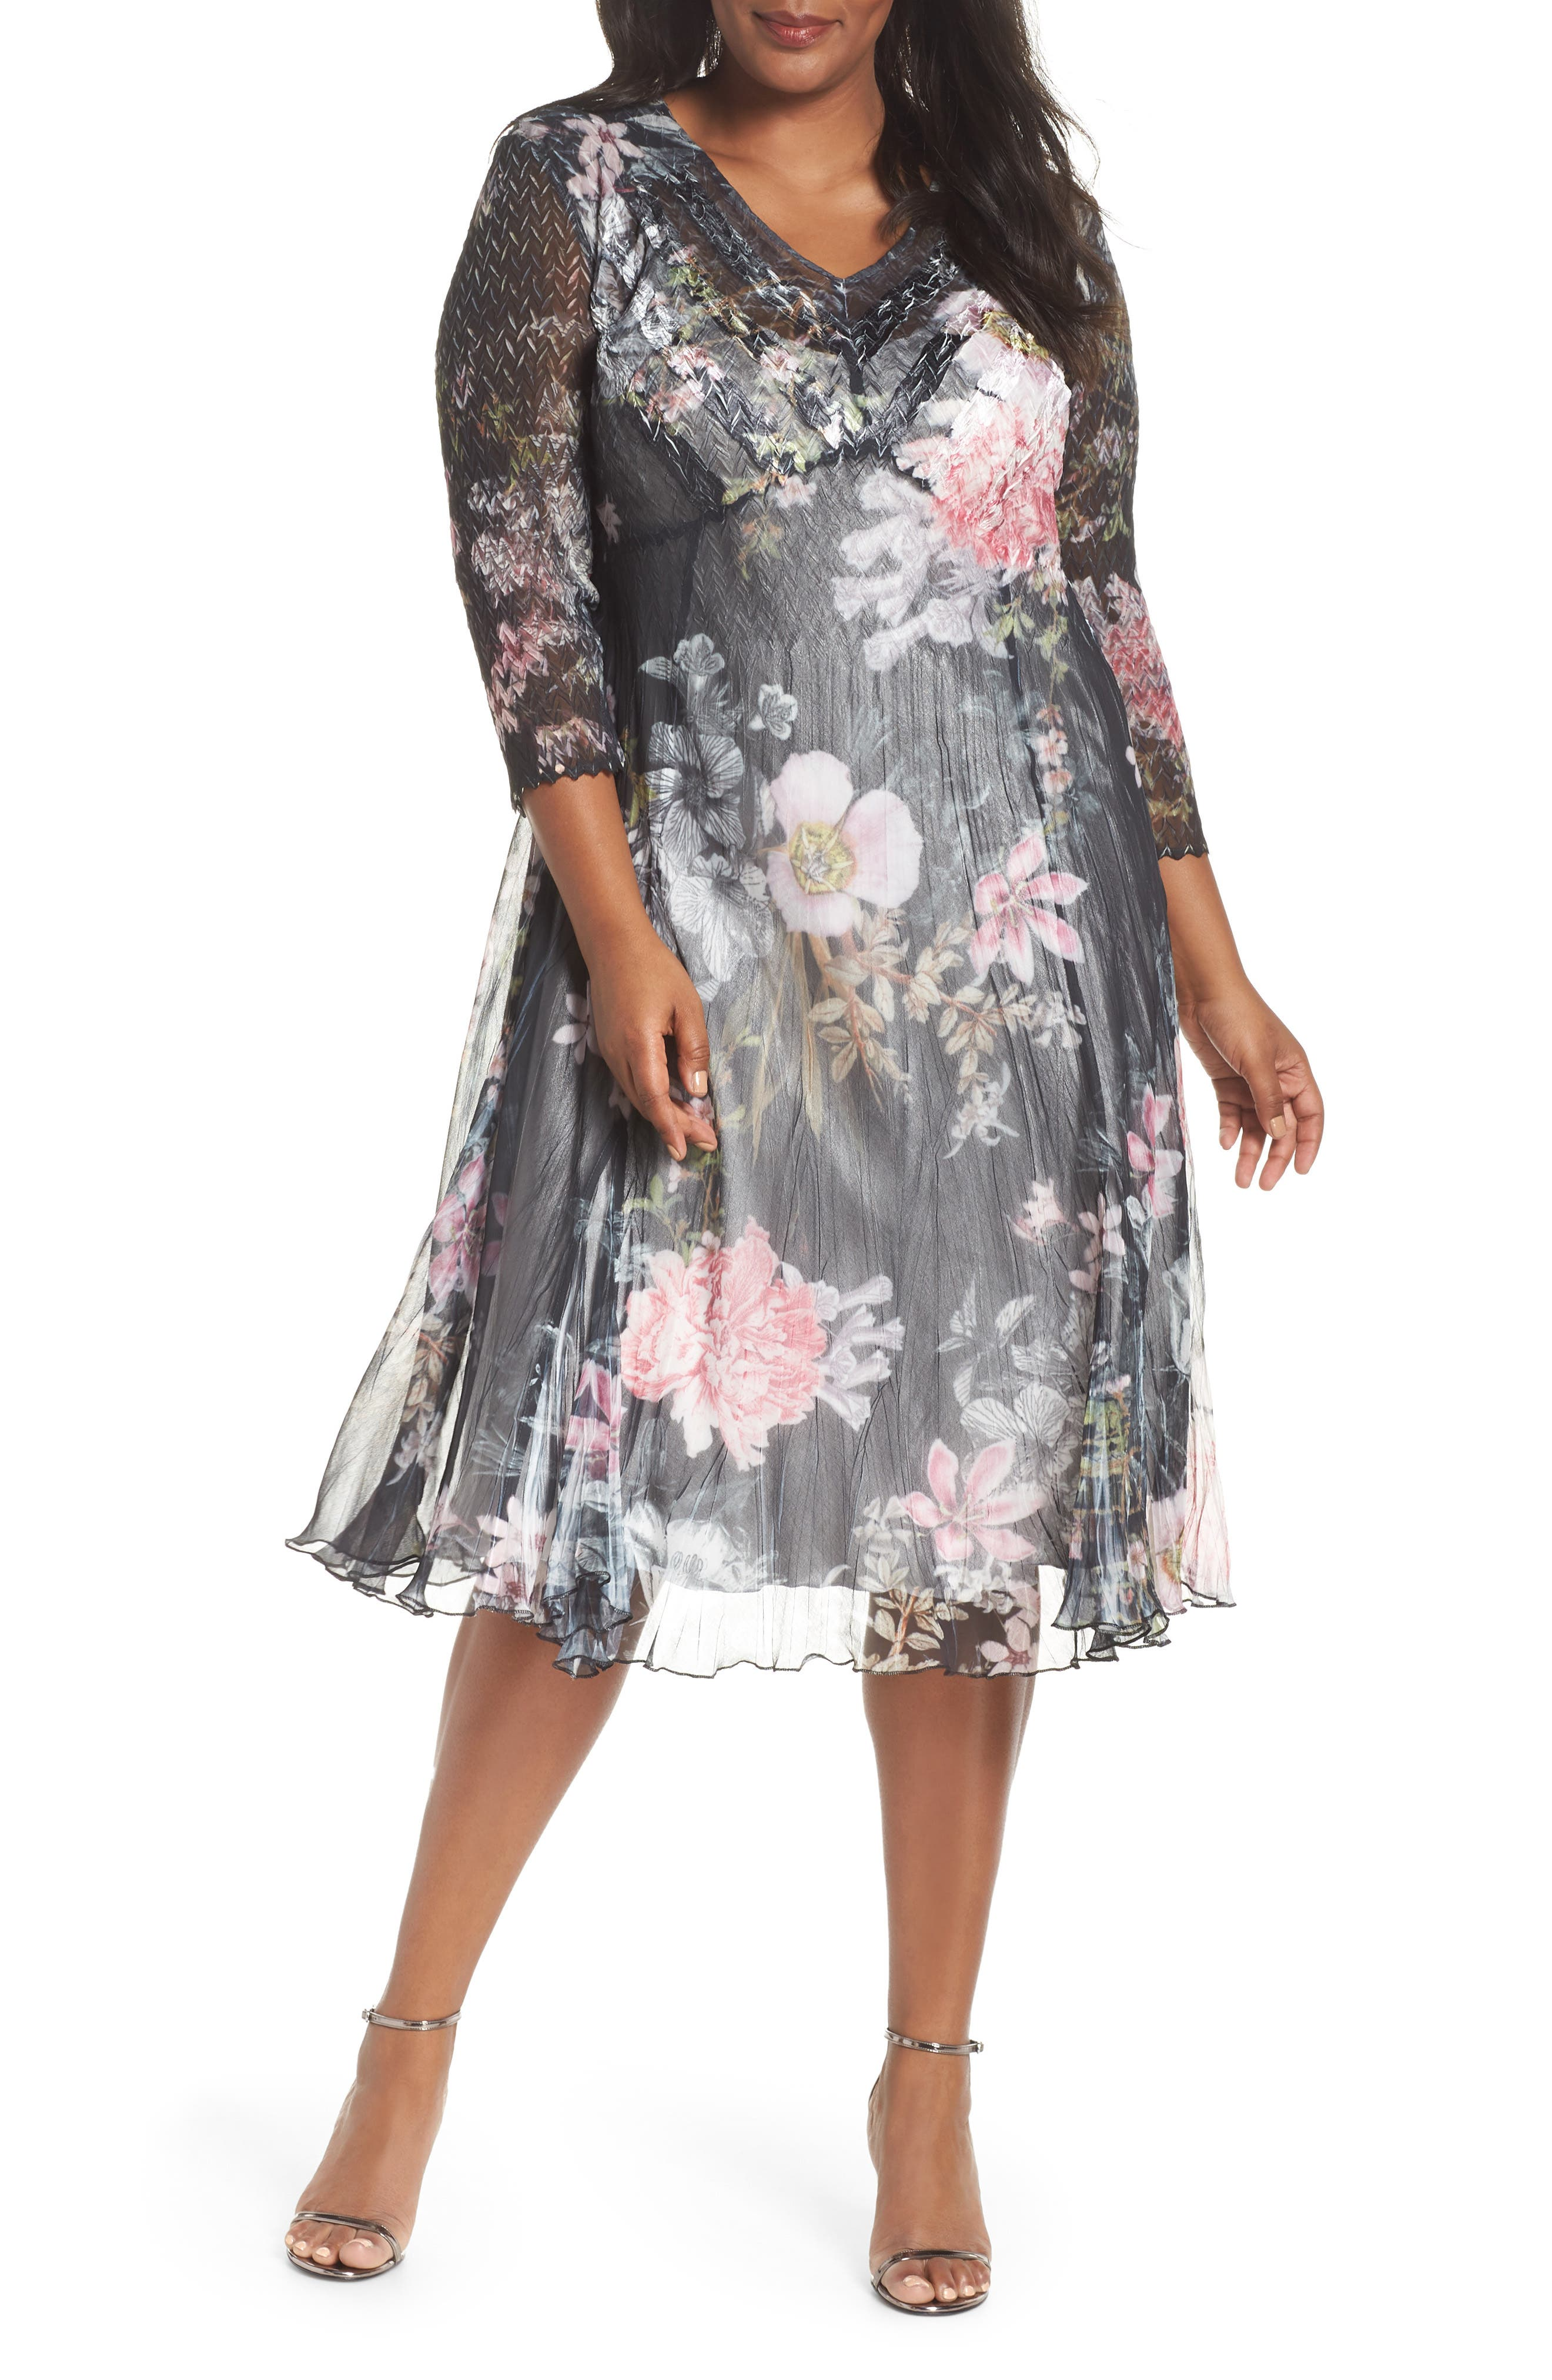 Kamarov Floral Charmeuse & Chiffon Floral A-Line Dress,                             Main thumbnail 1, color,                             001